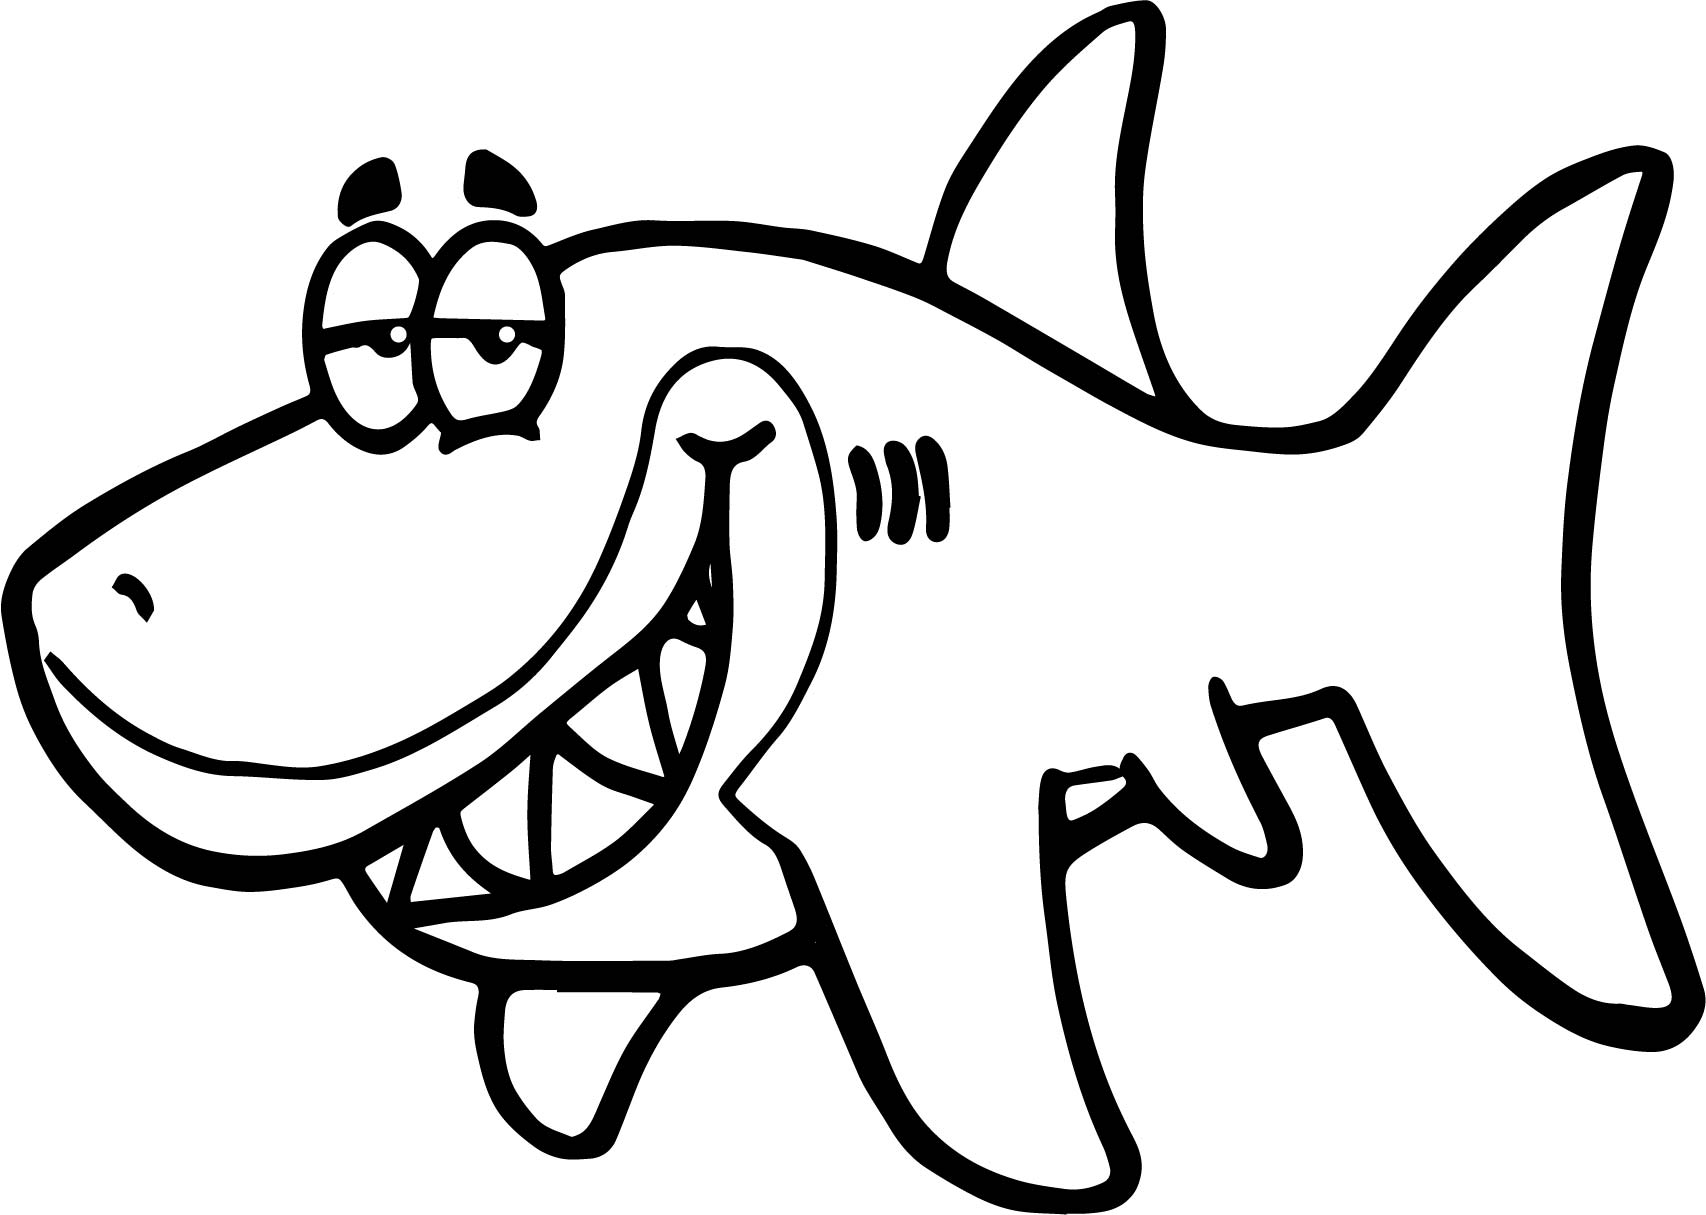 funny shark coloring pages funny shark drawing at getdrawings free download shark funny coloring pages